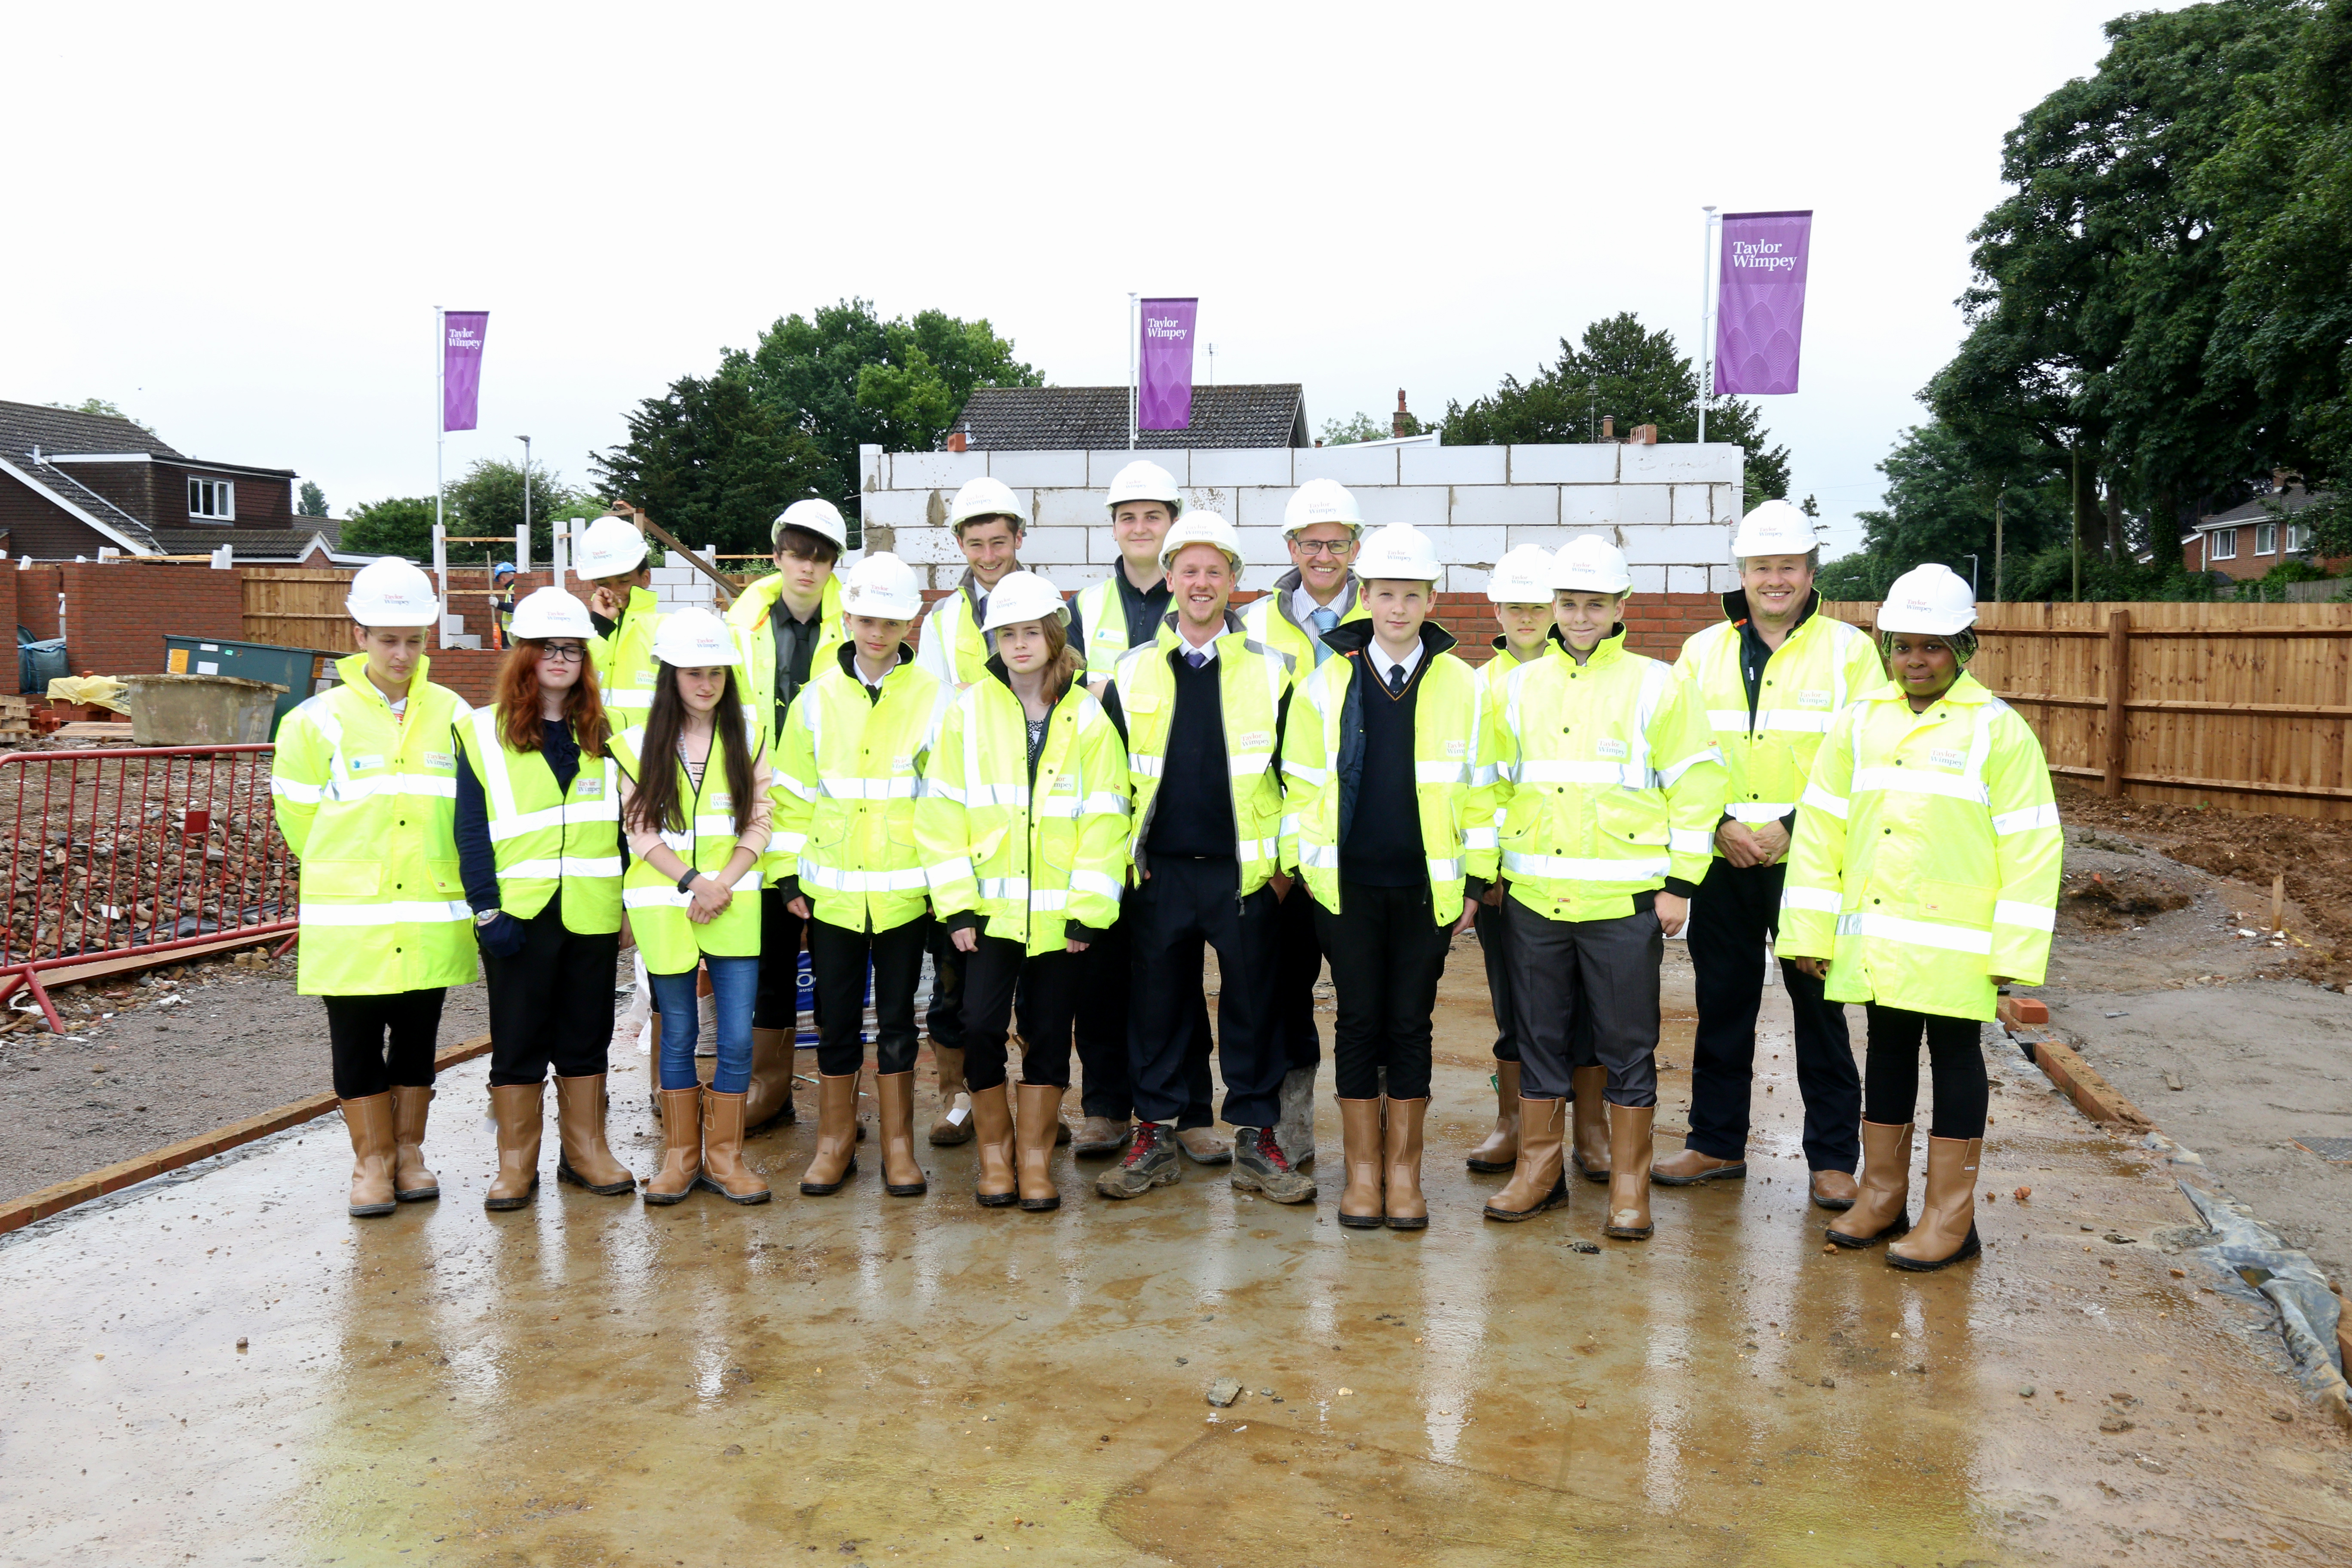 Taylor Wimpey - Bucks UTC at The Woodlands (1)